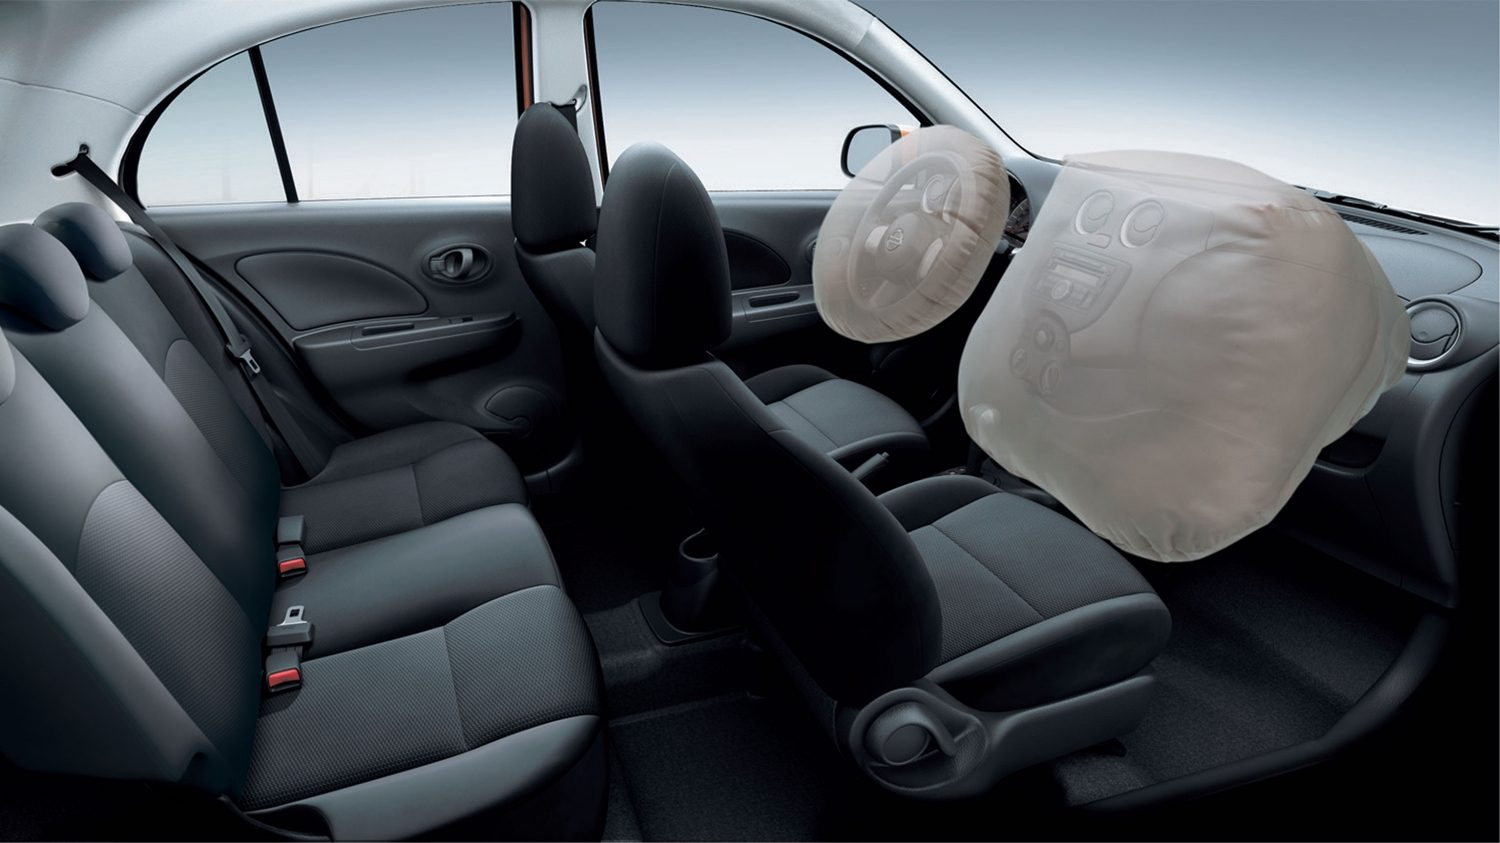 2 AIRBAGS